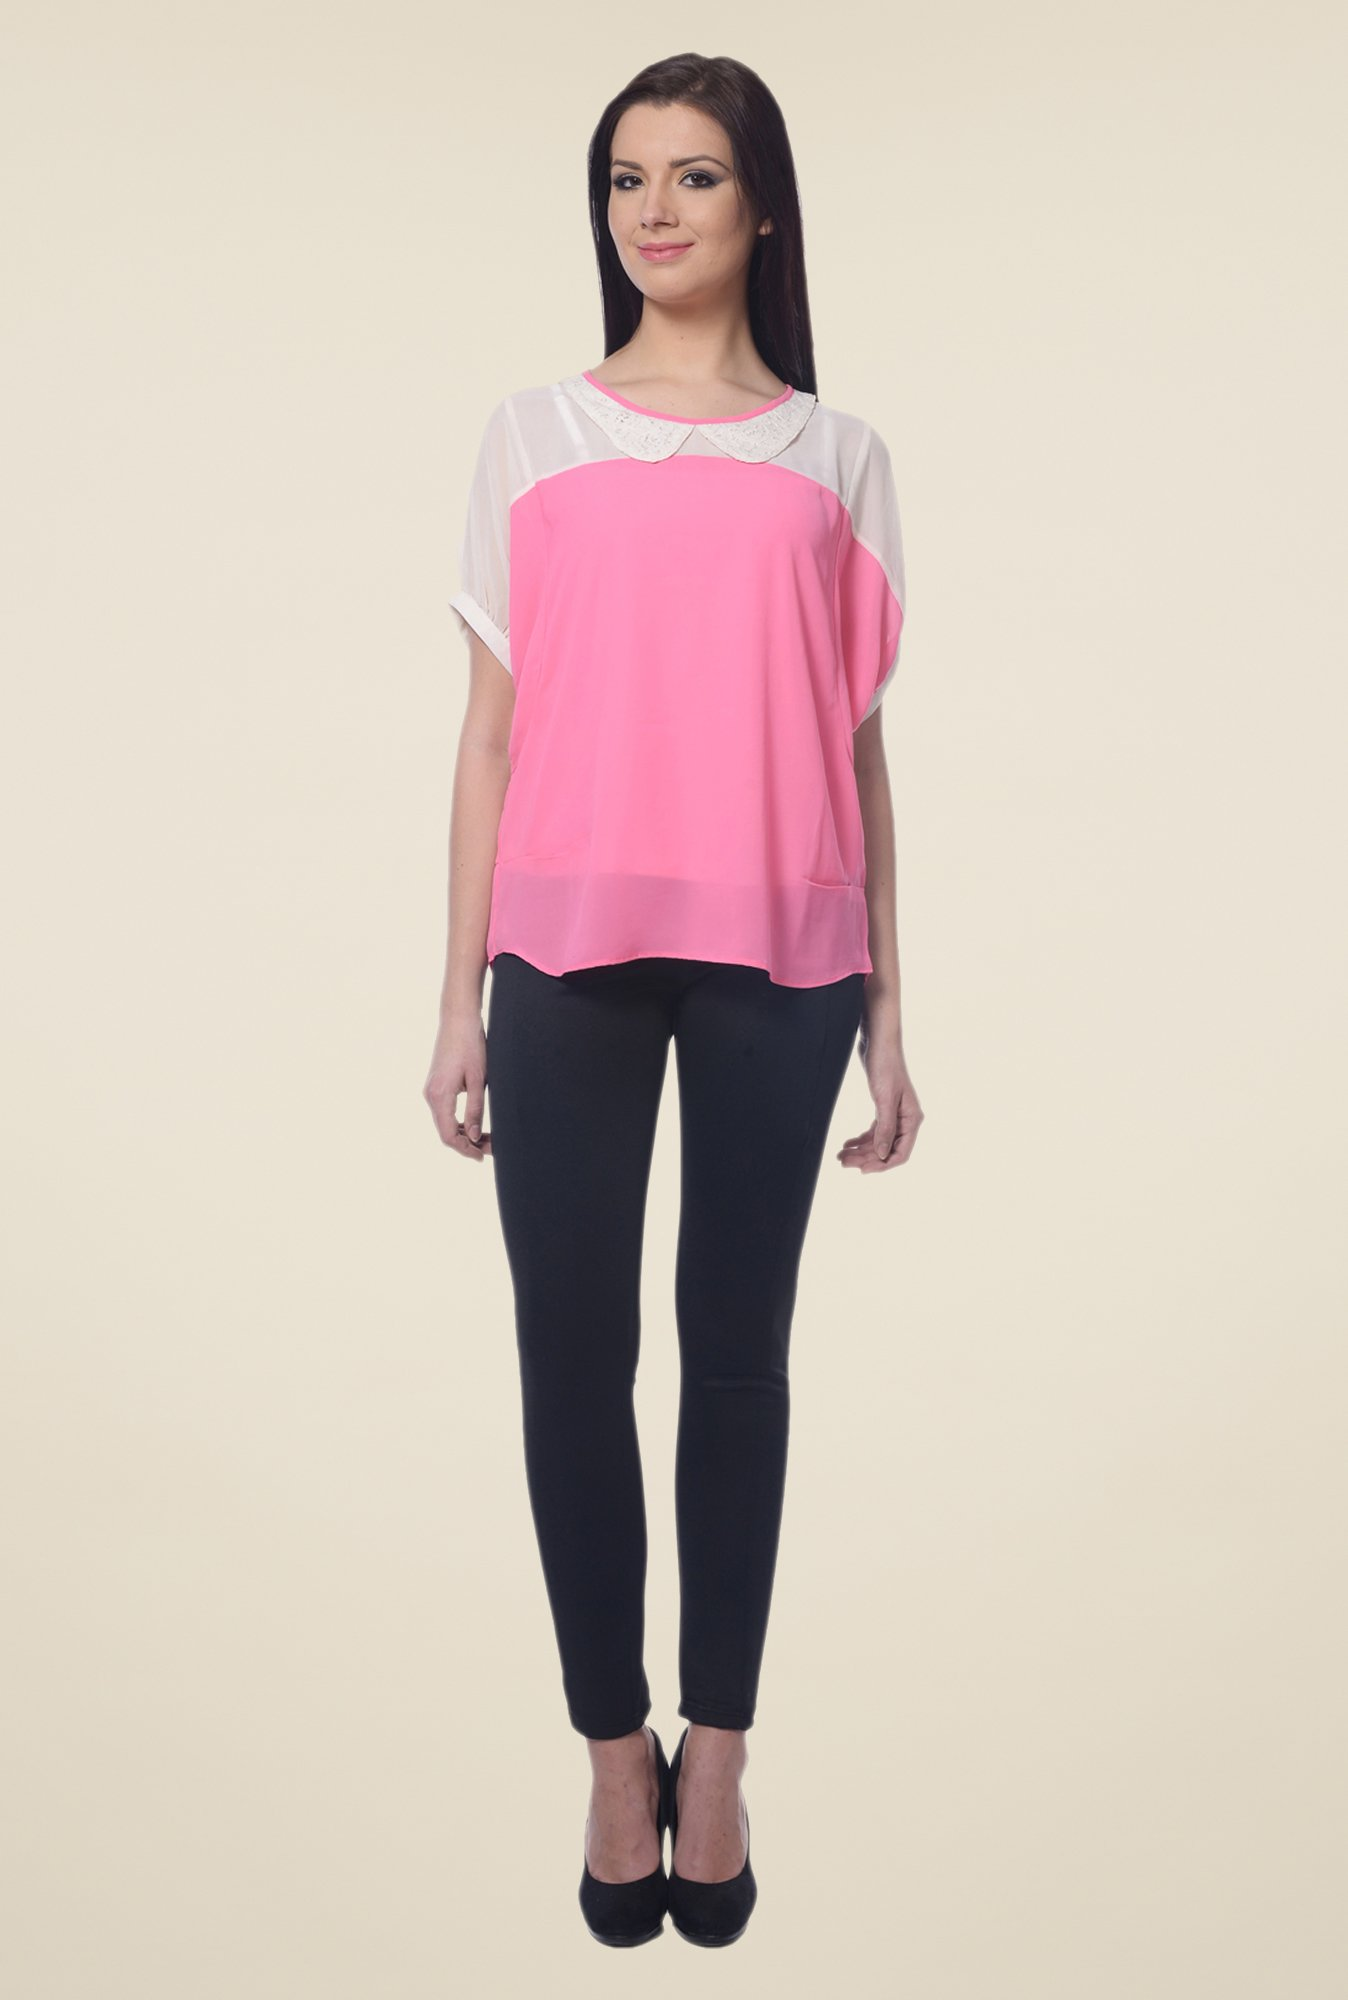 Forever Fashion Pink & White Top